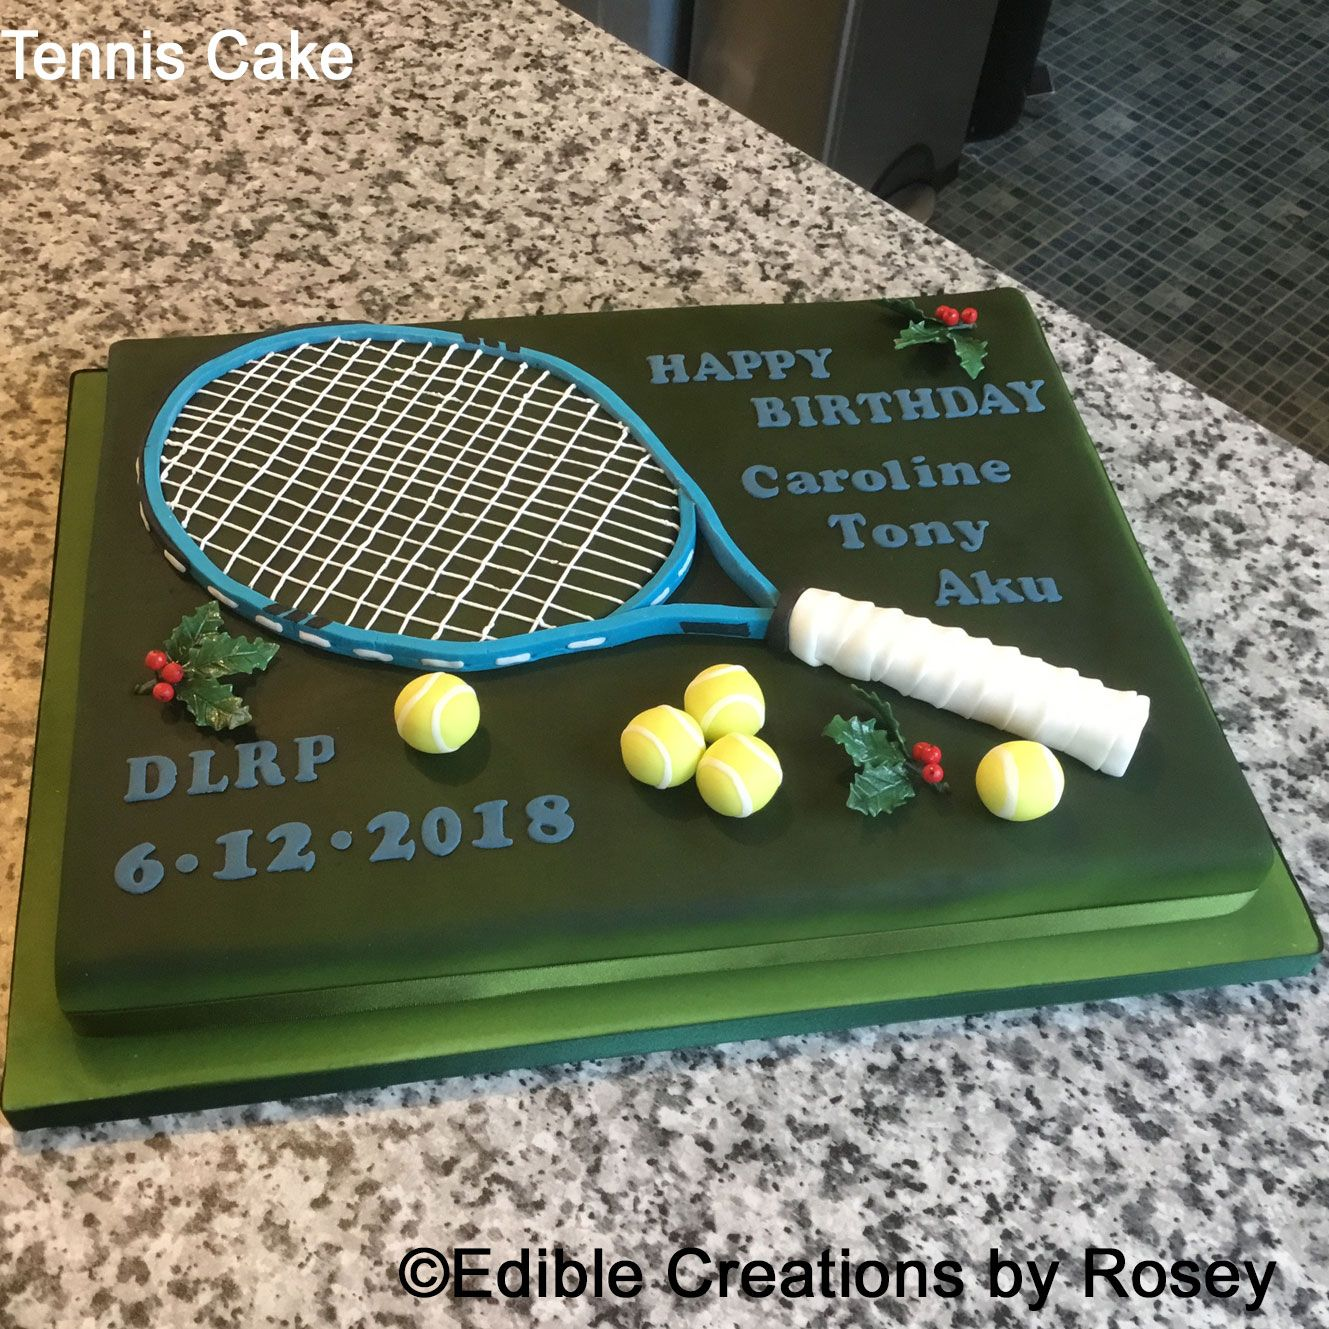 Tennis Themed Birthday Cake By Edible Creations By Rosey With